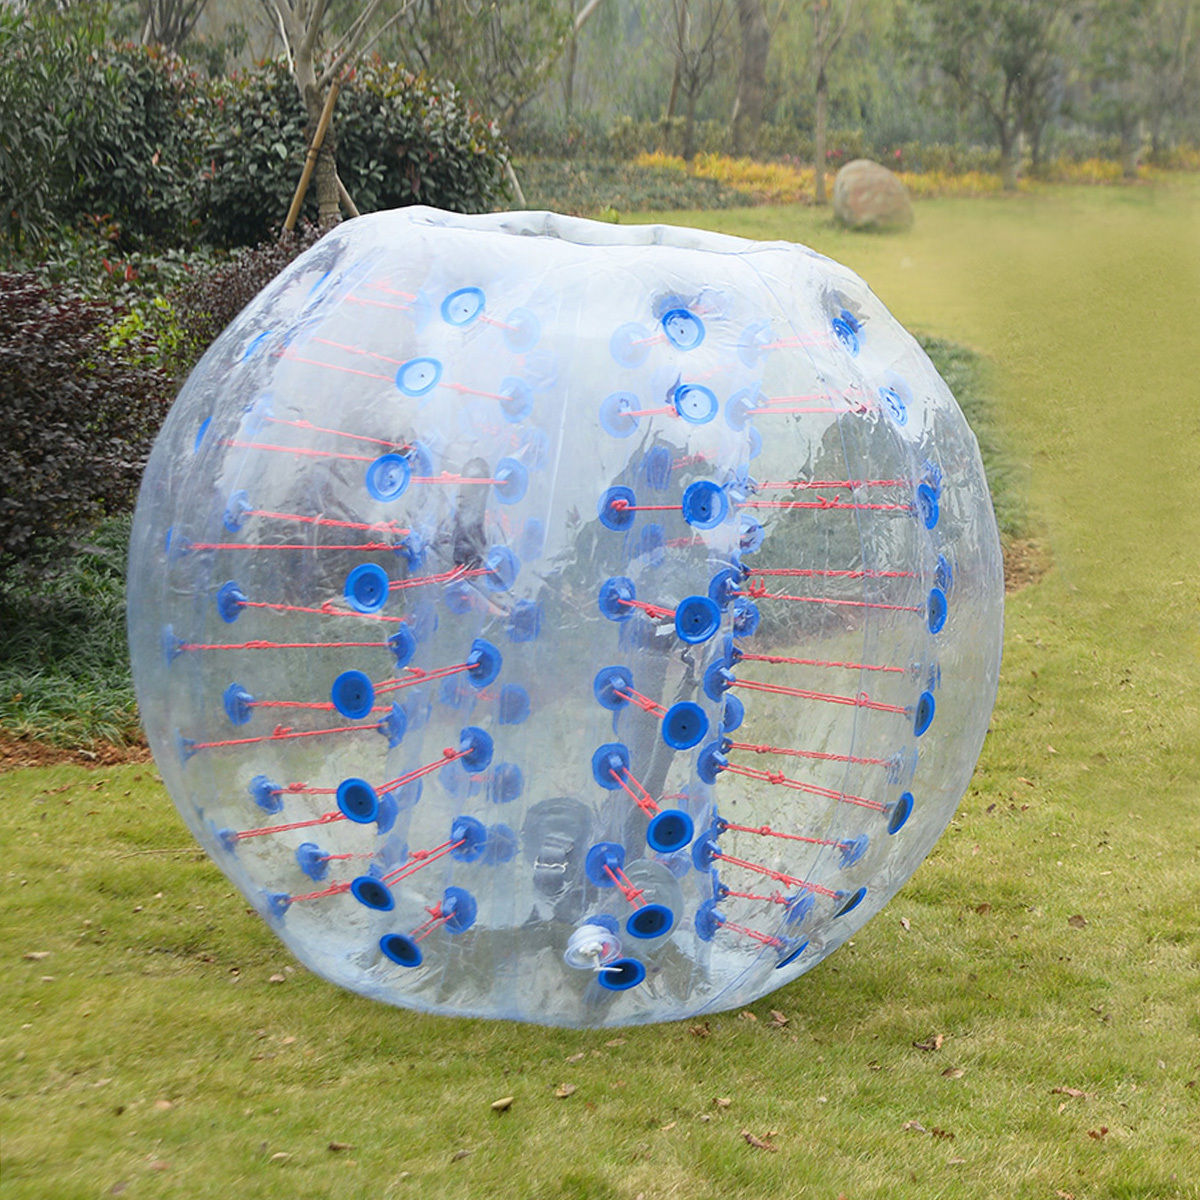 Costway 1 PC 1.5M Inflatable Bumper Ball Body Zorbing Ball Zorb Bubble Soccer Football by Costway